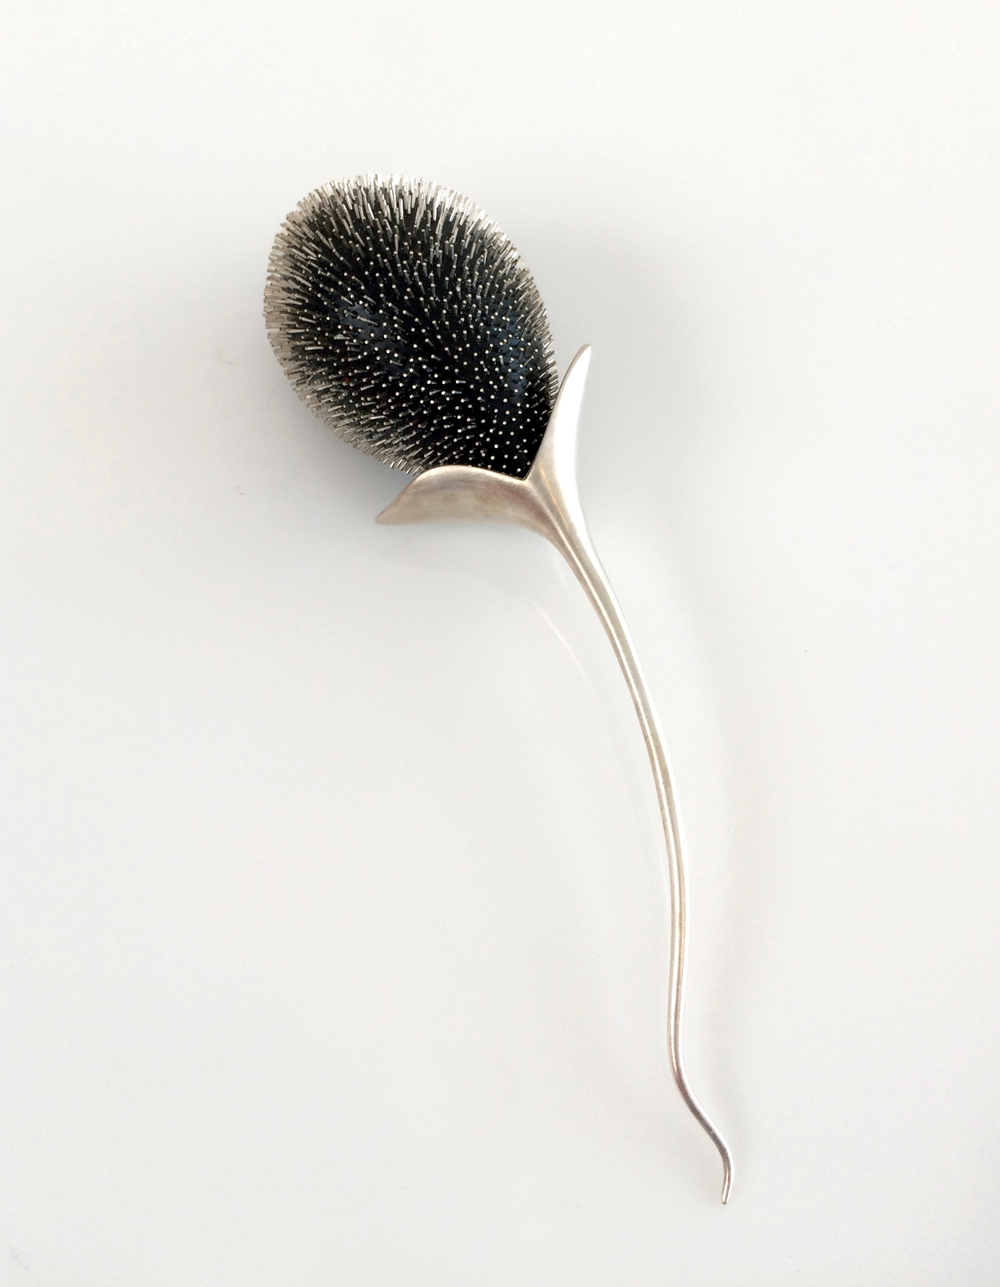 Suzanne Amendolara & Dan DiCaprio, New Growth (Brooch), Sterling Silver, Ebony, Stainless Steel